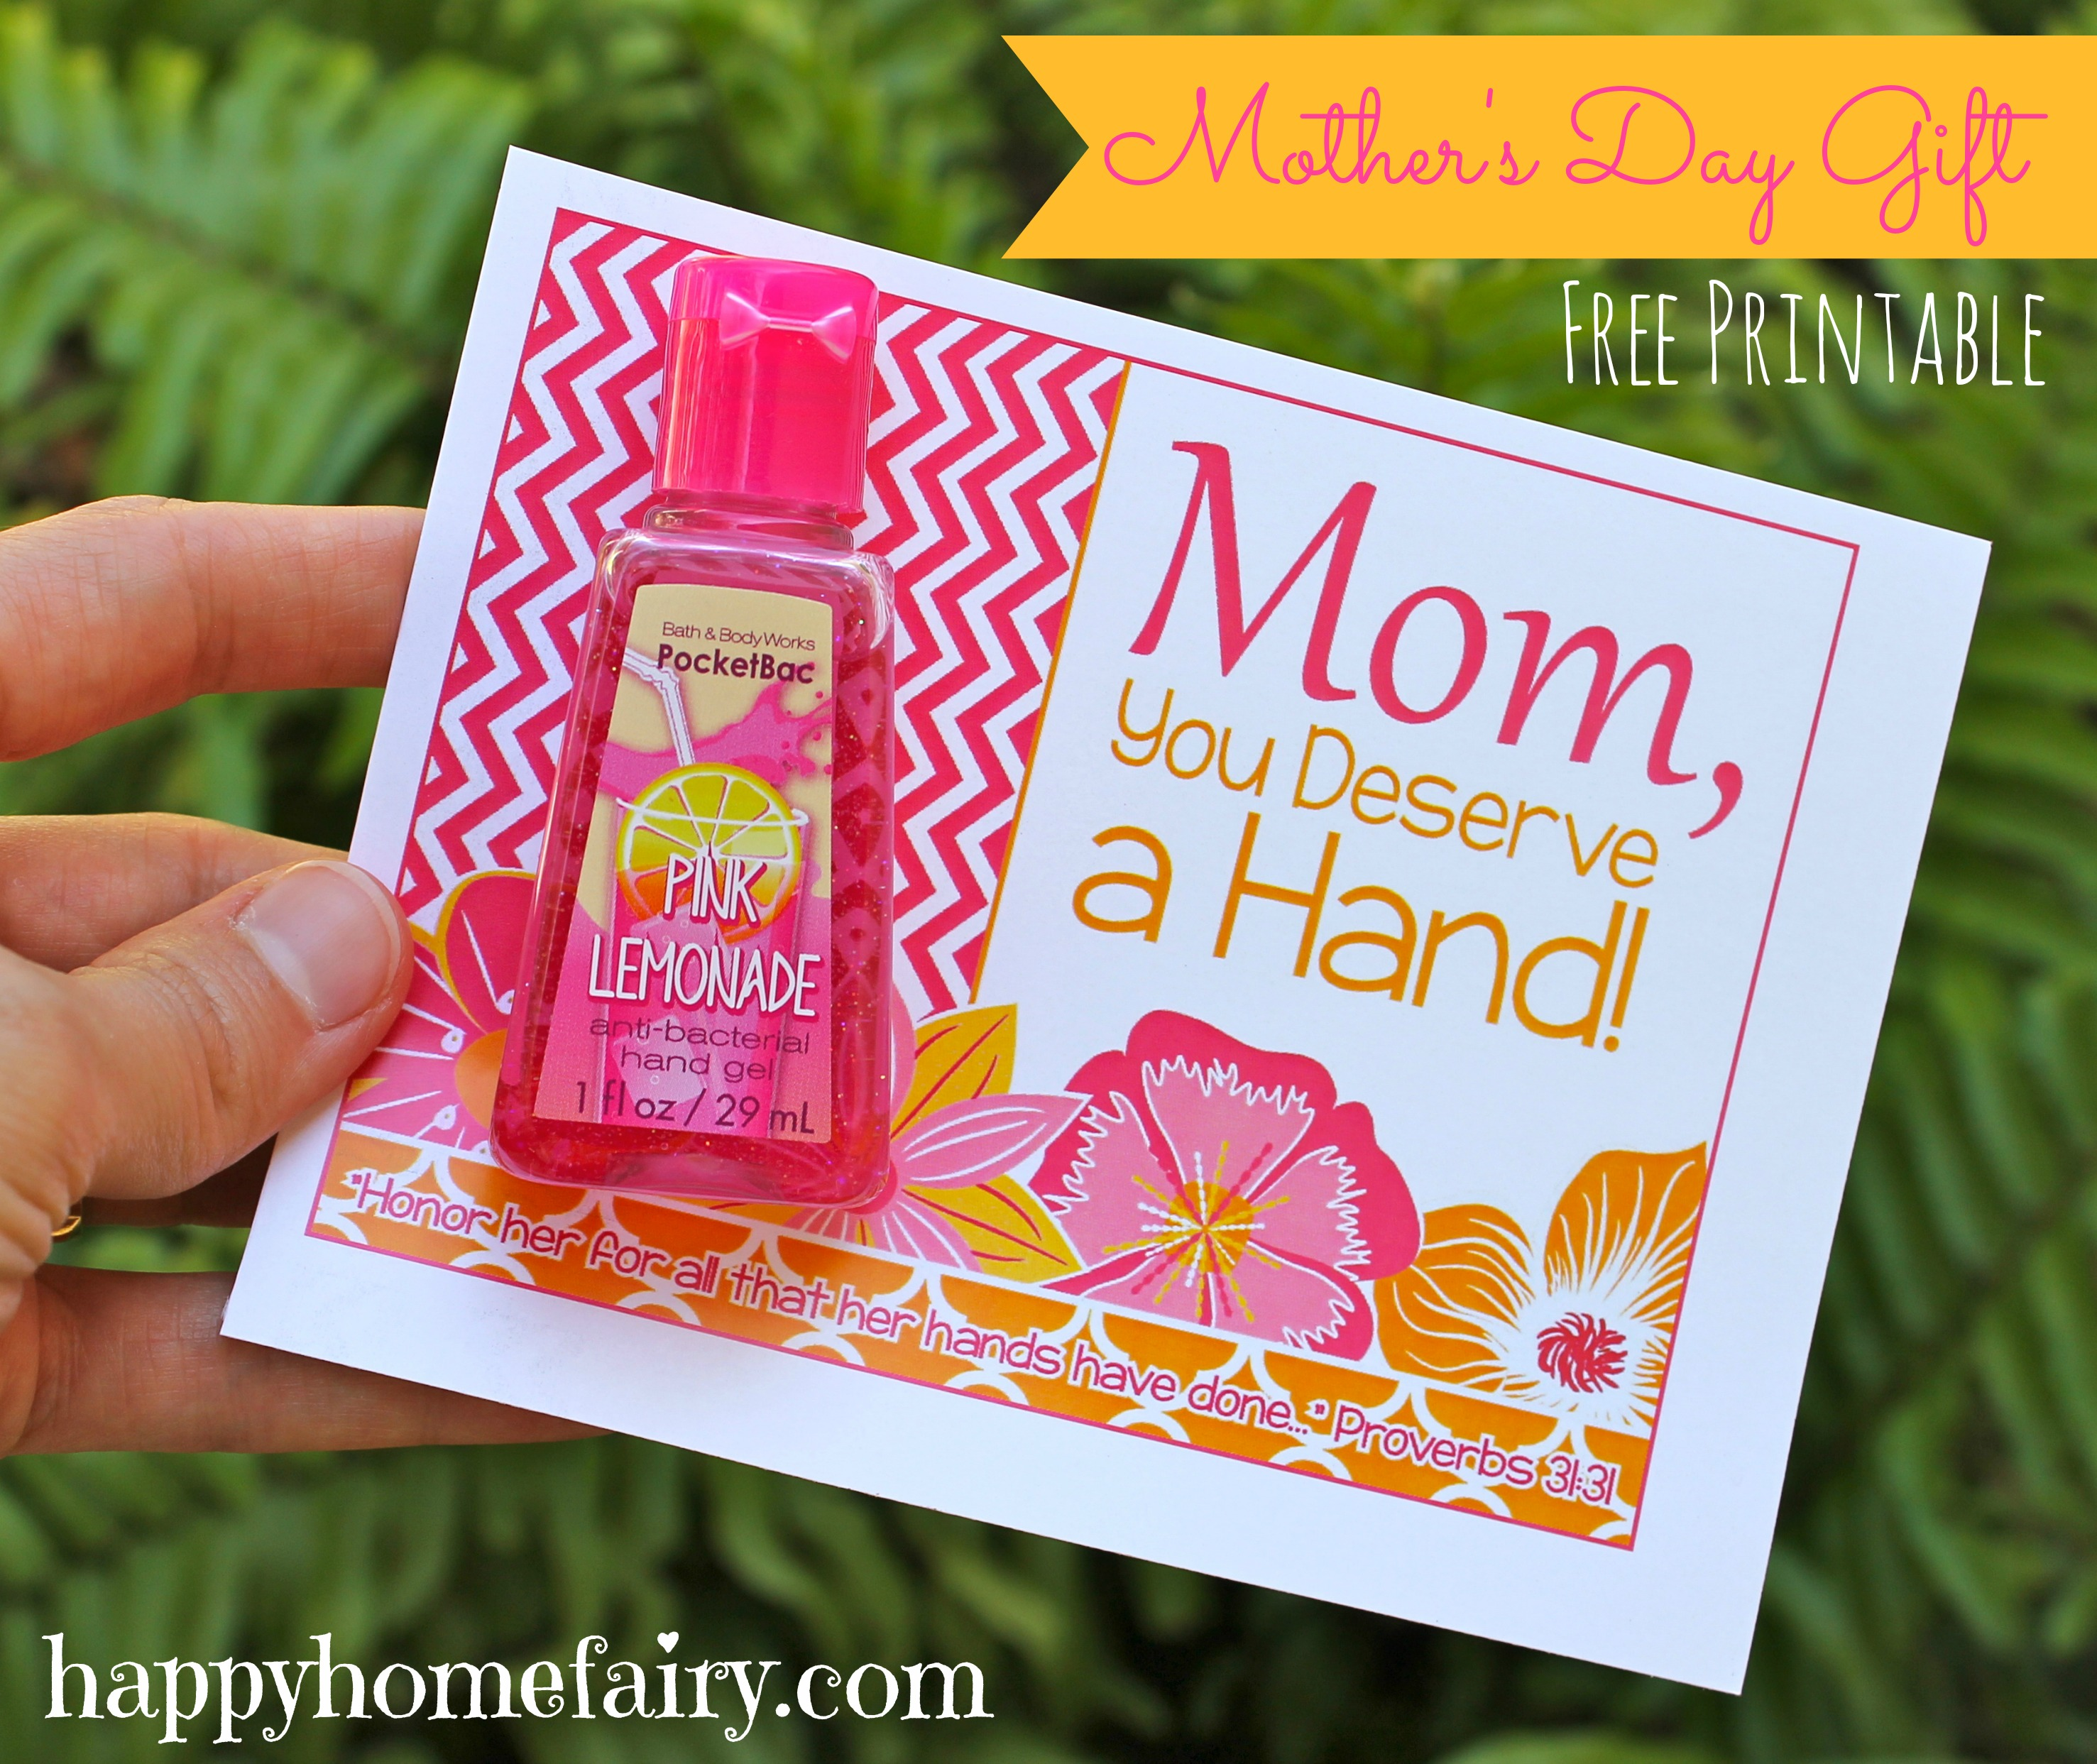 Easy Mother's Day Gift Idea - FREE Printable!